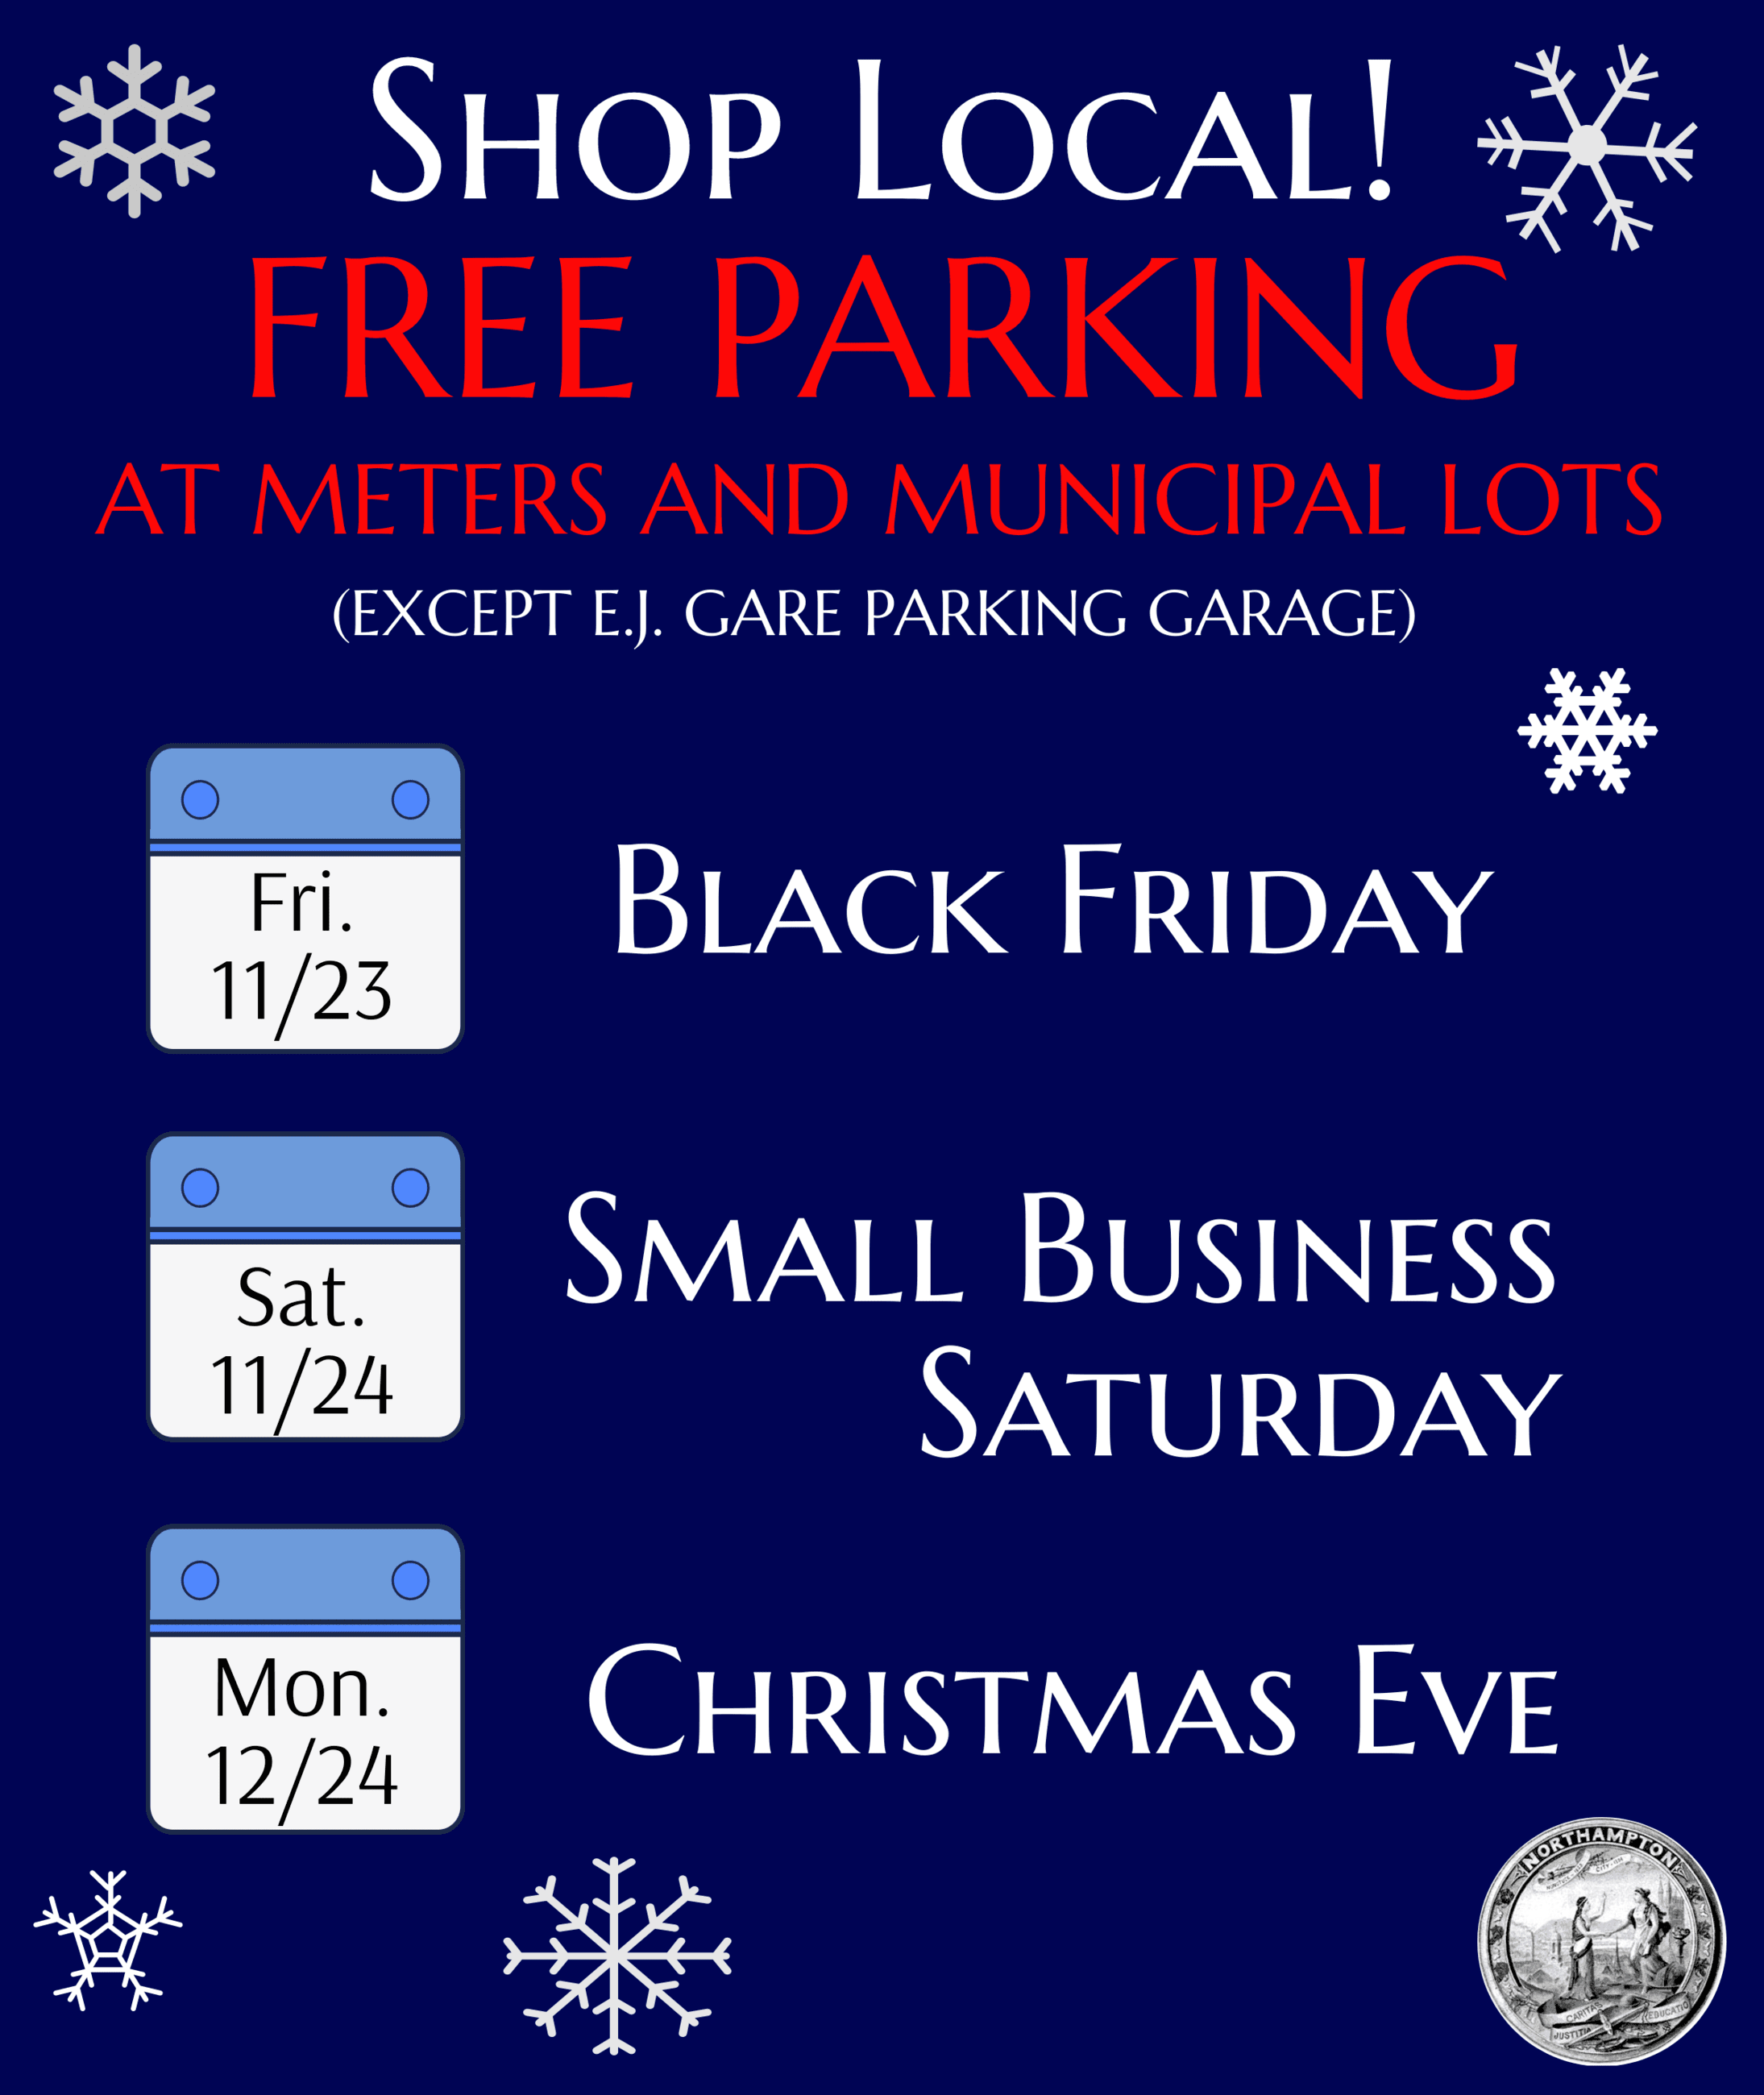 Image of Shop Local Free Parking flyer